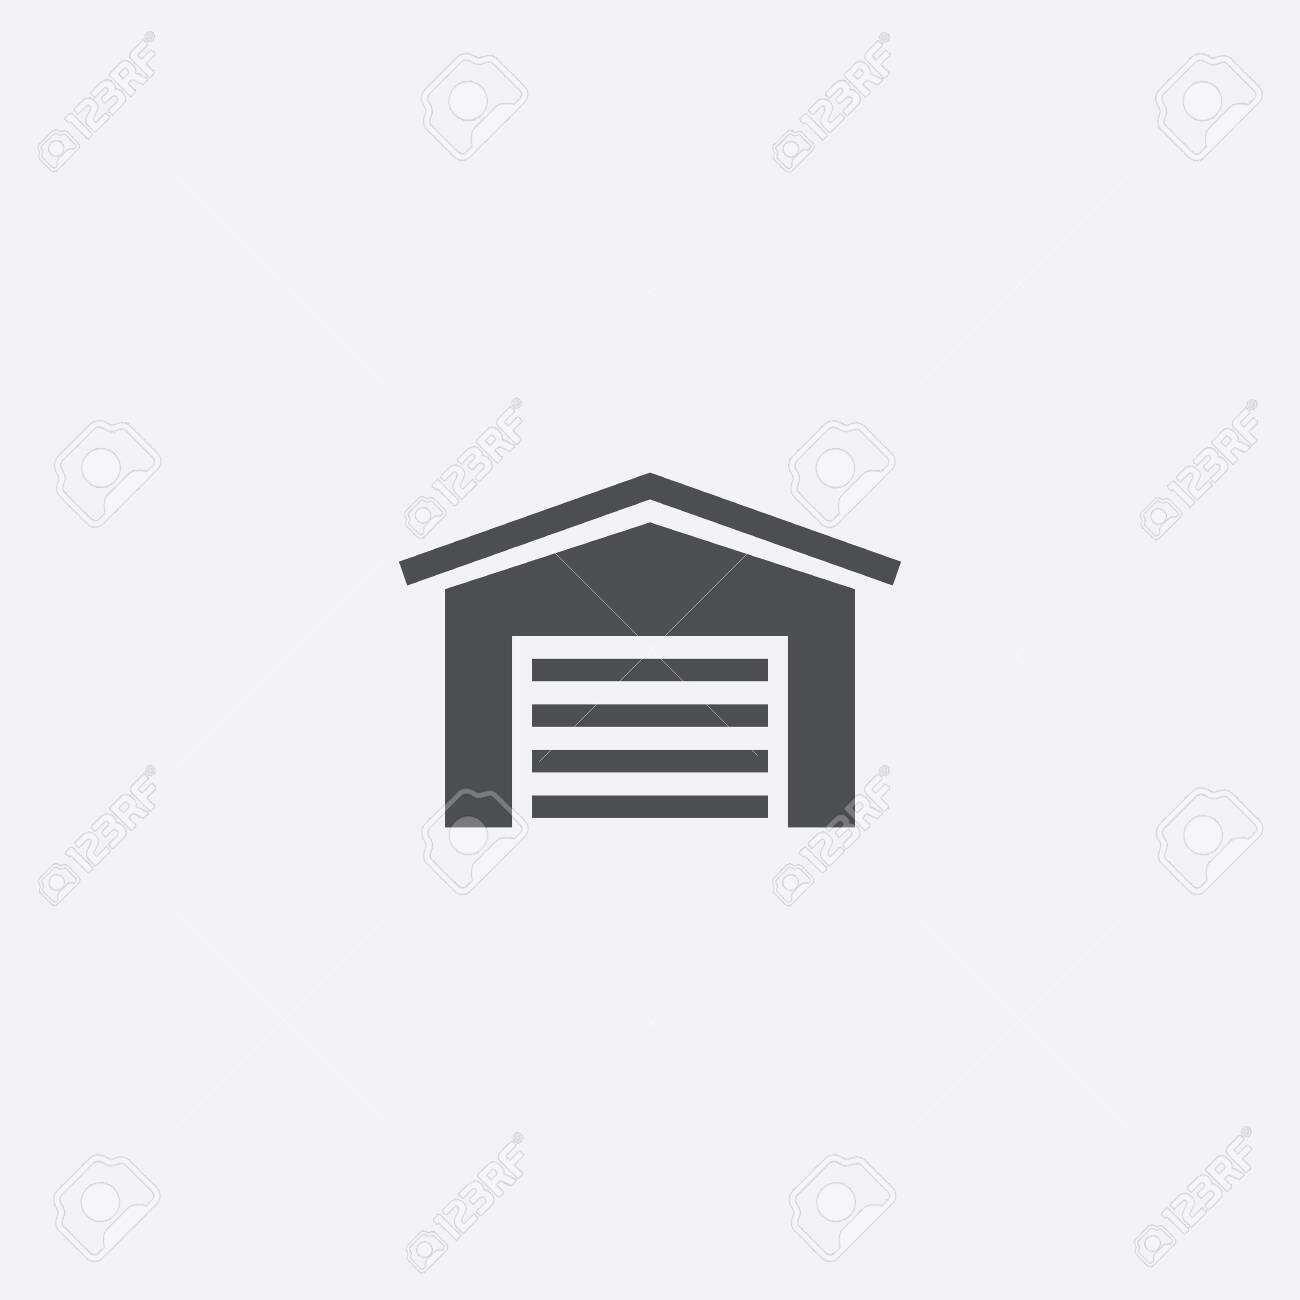 Car Garage Icon Royalty Free Cliparts Vectors And Stock Illustration Image 143059456